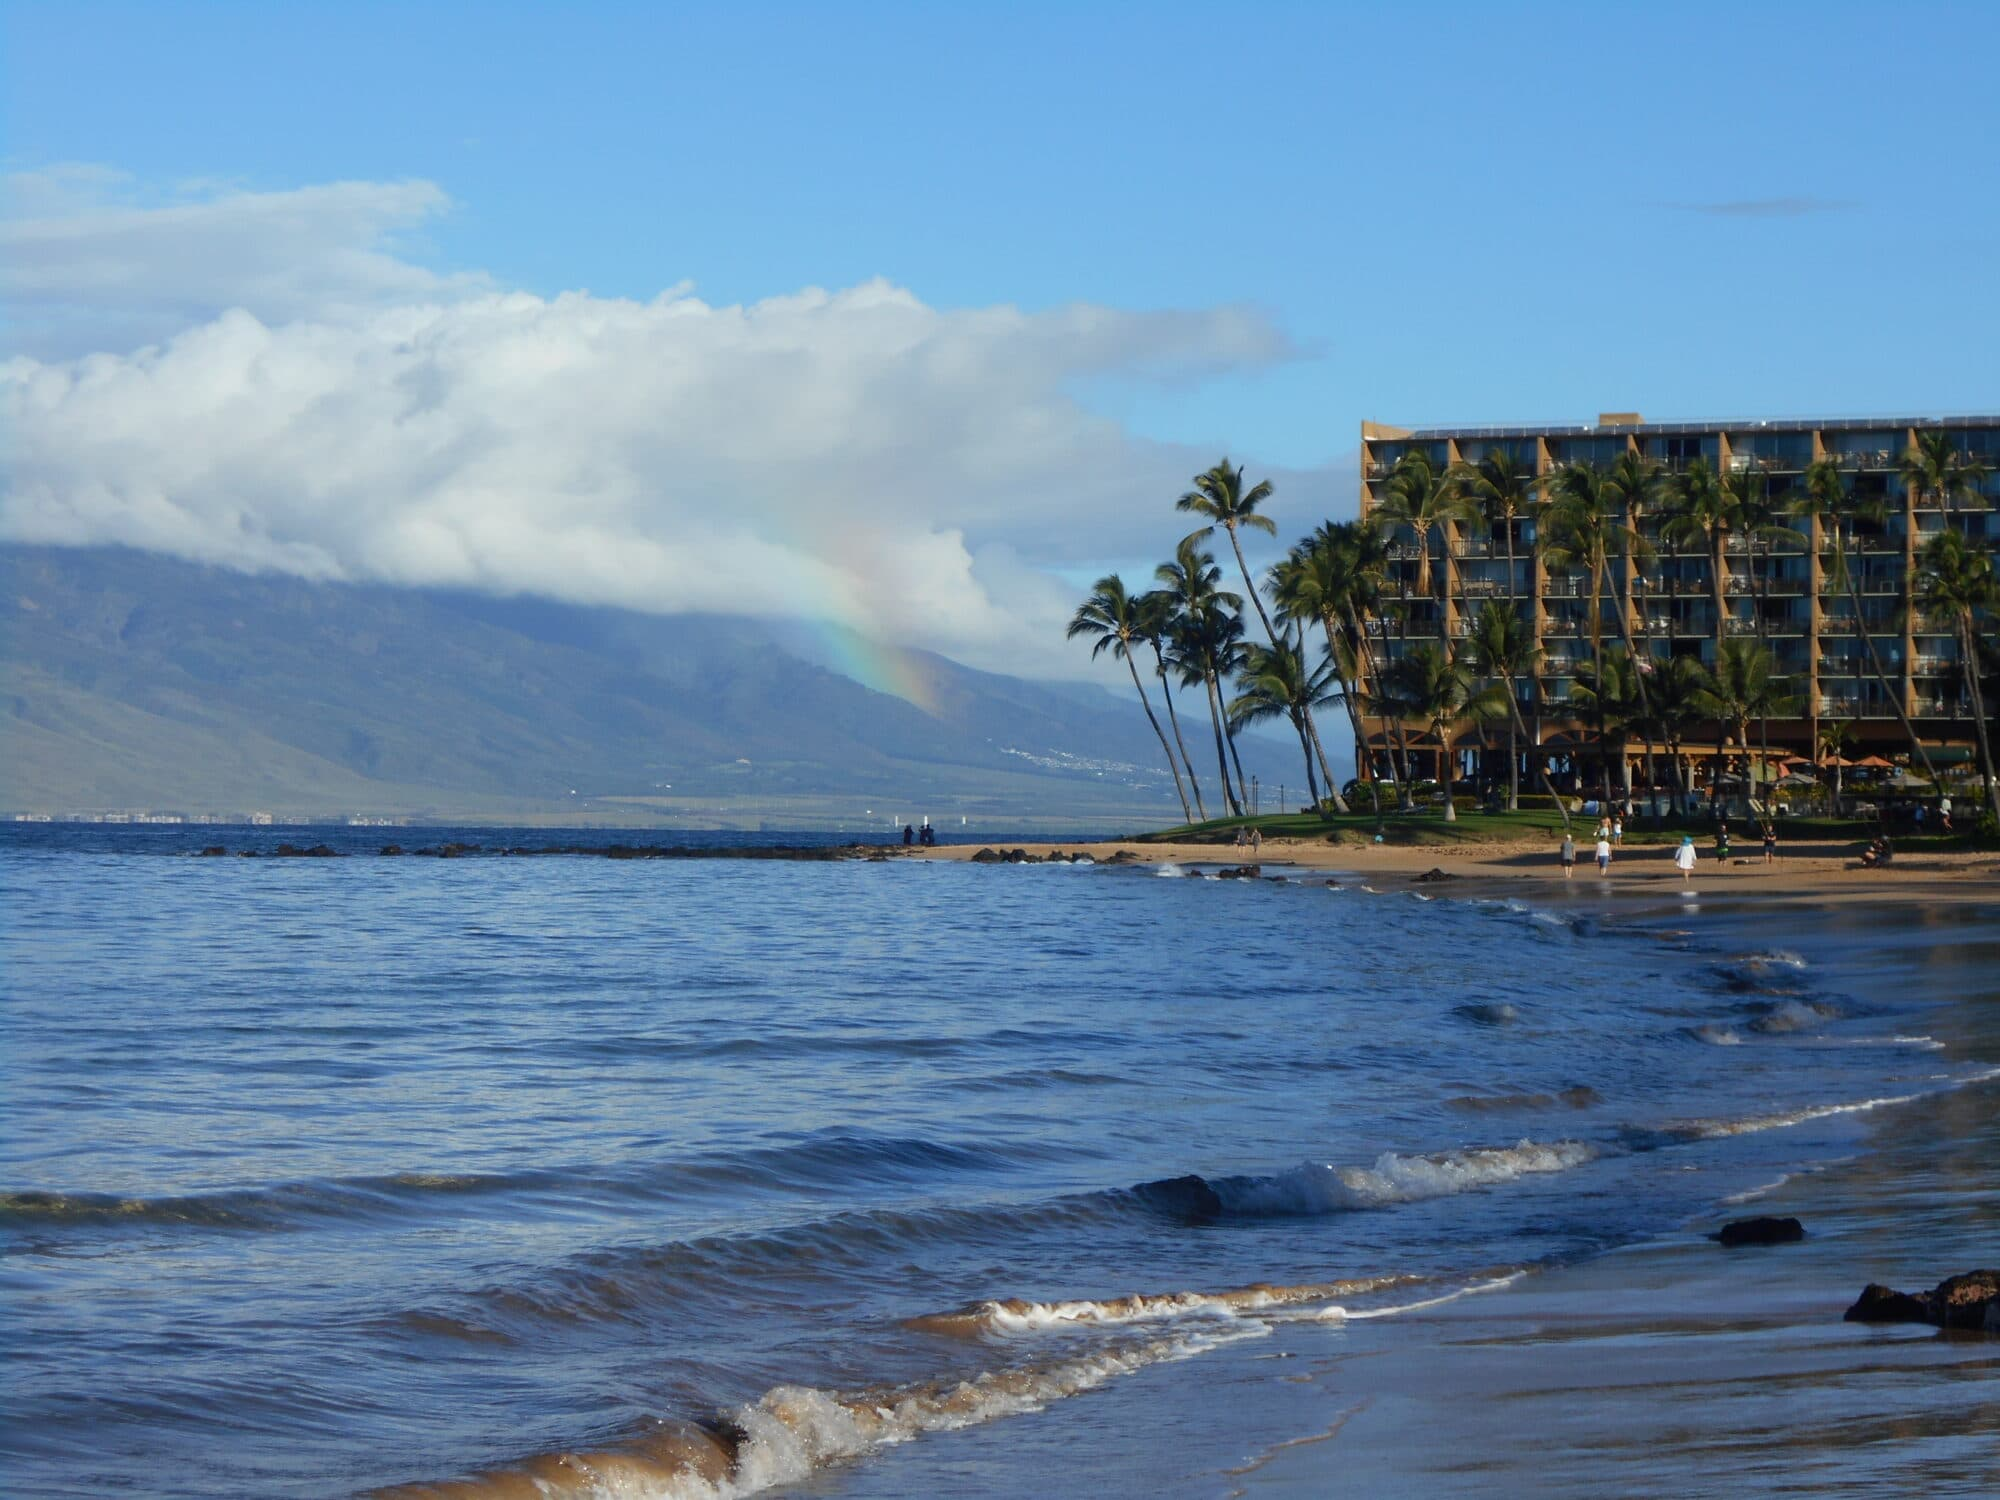 Rainbows rise regularly in Maui